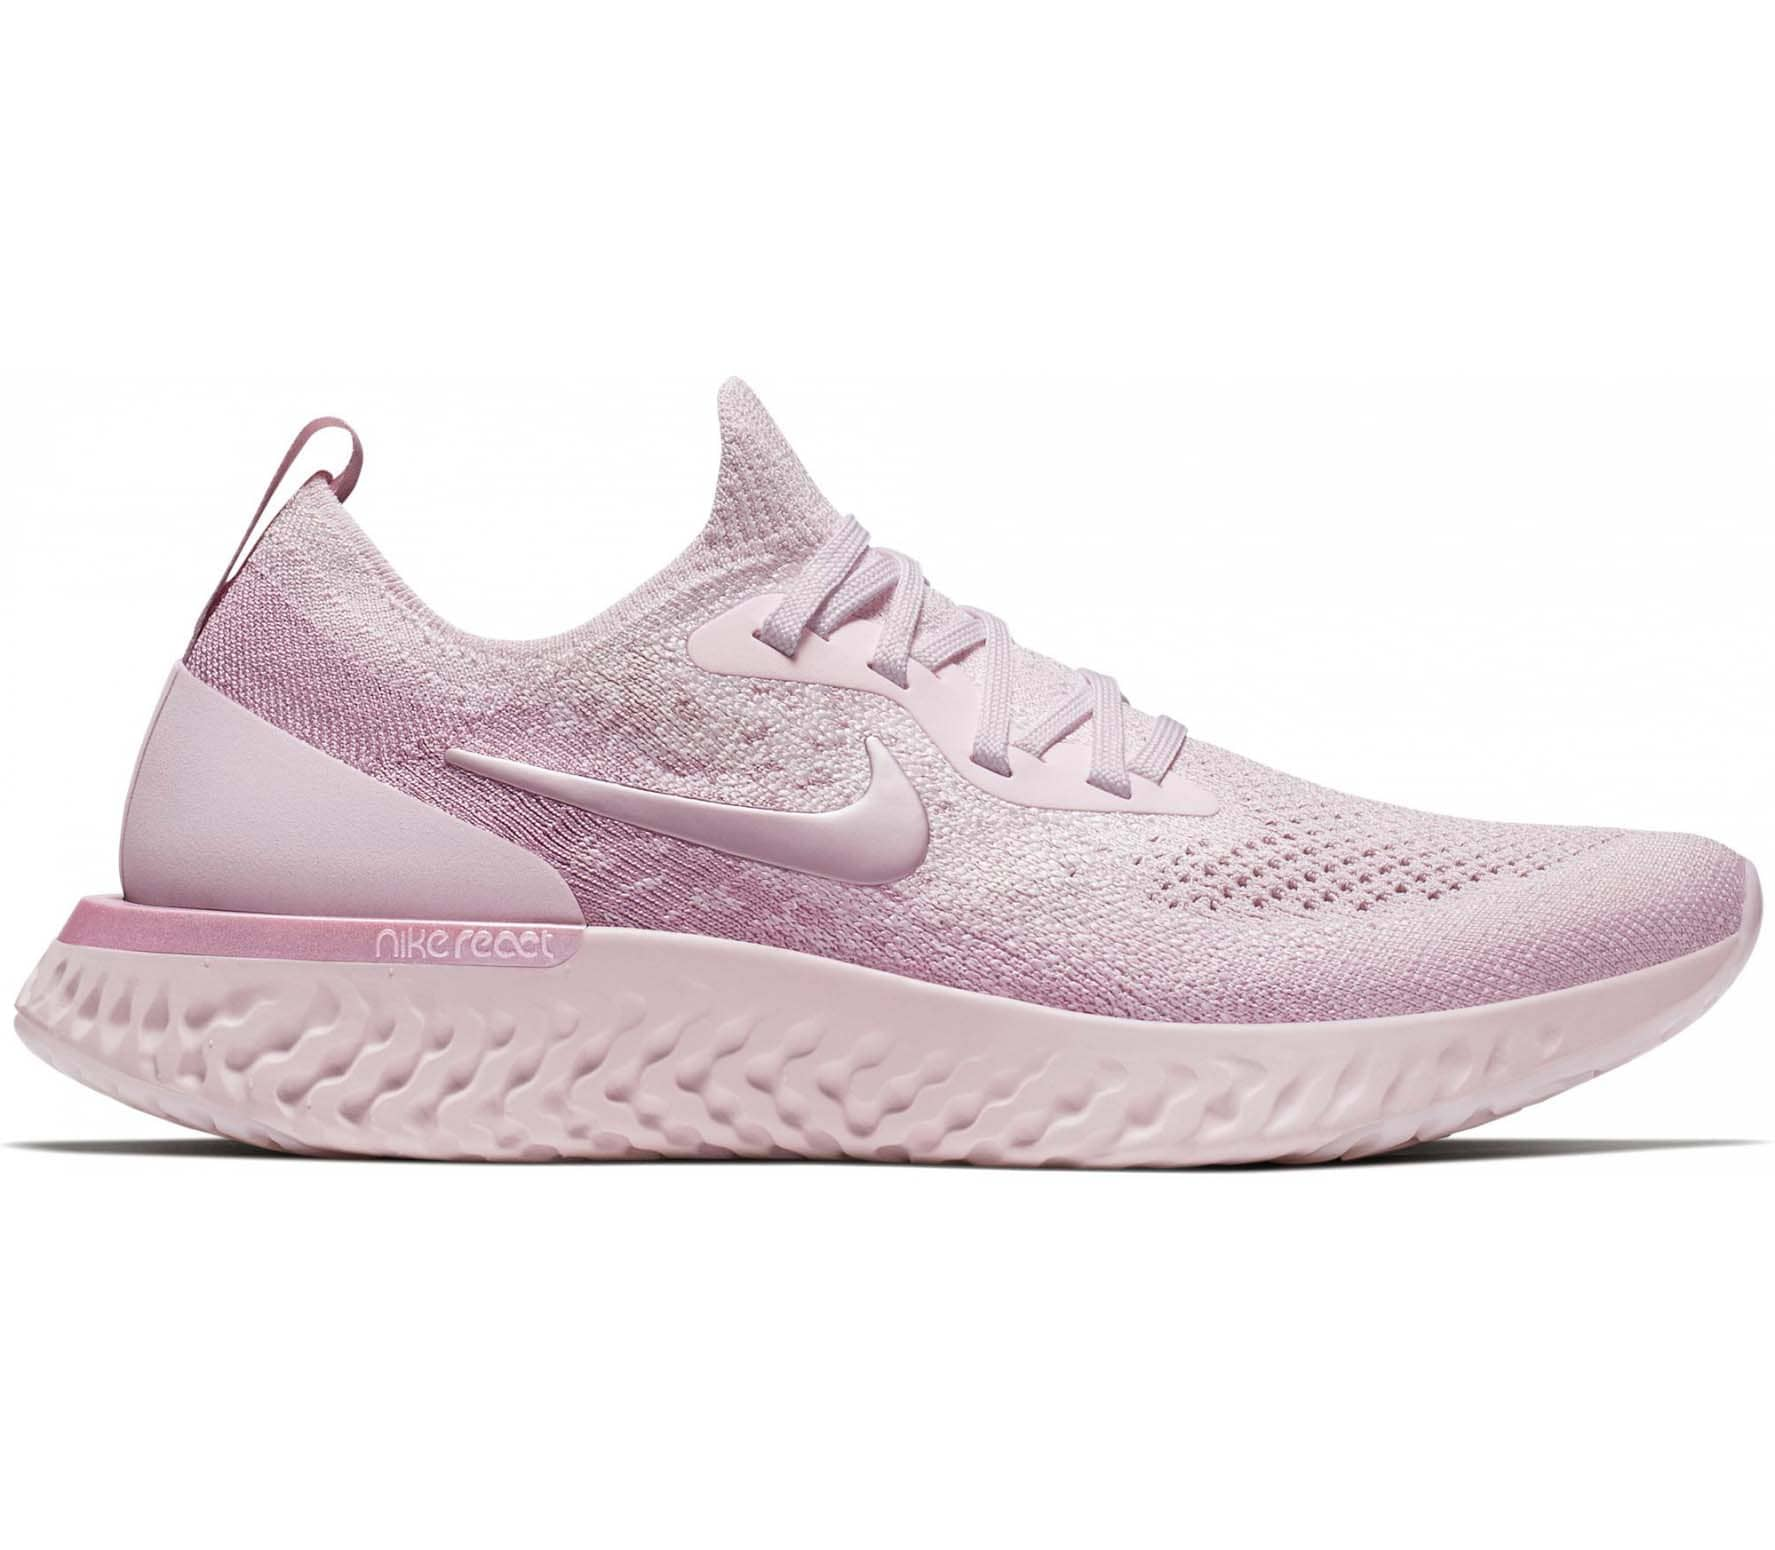 eb16228cce Nike - Epic React Flyknit Femmes chaussure de course (rose) acheter ...